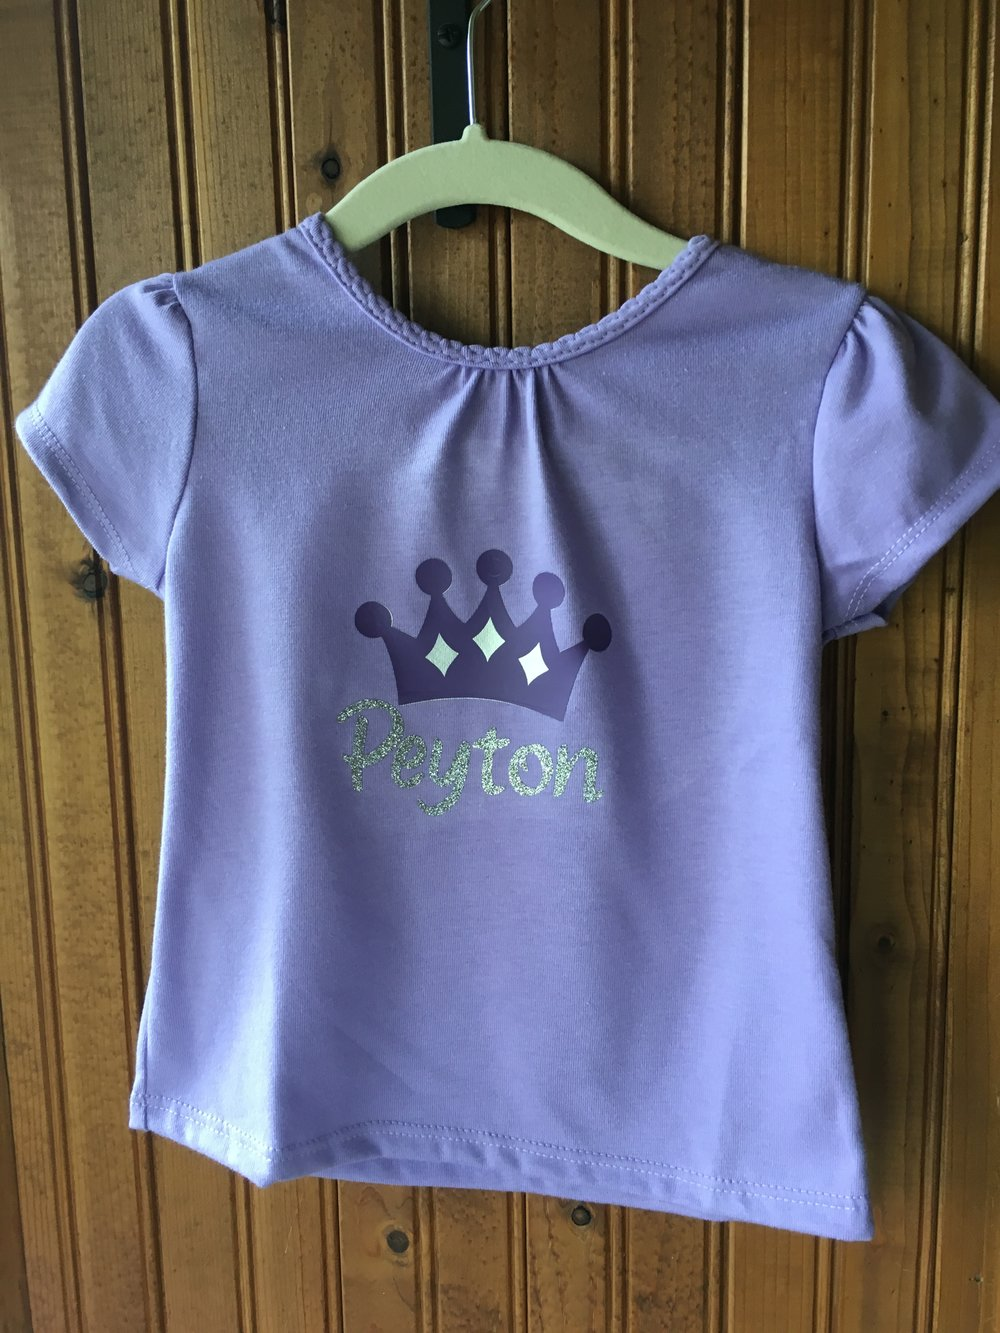 Personalize this shirt with the name of YOUR little princess in silver glitter. The tiara features silver diamonds. Available in toddler girl sizes 2T-4T. Other color combinations available. $15 Please allow up to one week for your custom order to be completed I offer pickup in Lake Mills, WI 7 days a week after your order is ready I also offer limited delivery (usually 1 day per week) in Lake Mills and Fort Atkinson Shipping is available throughout the United States